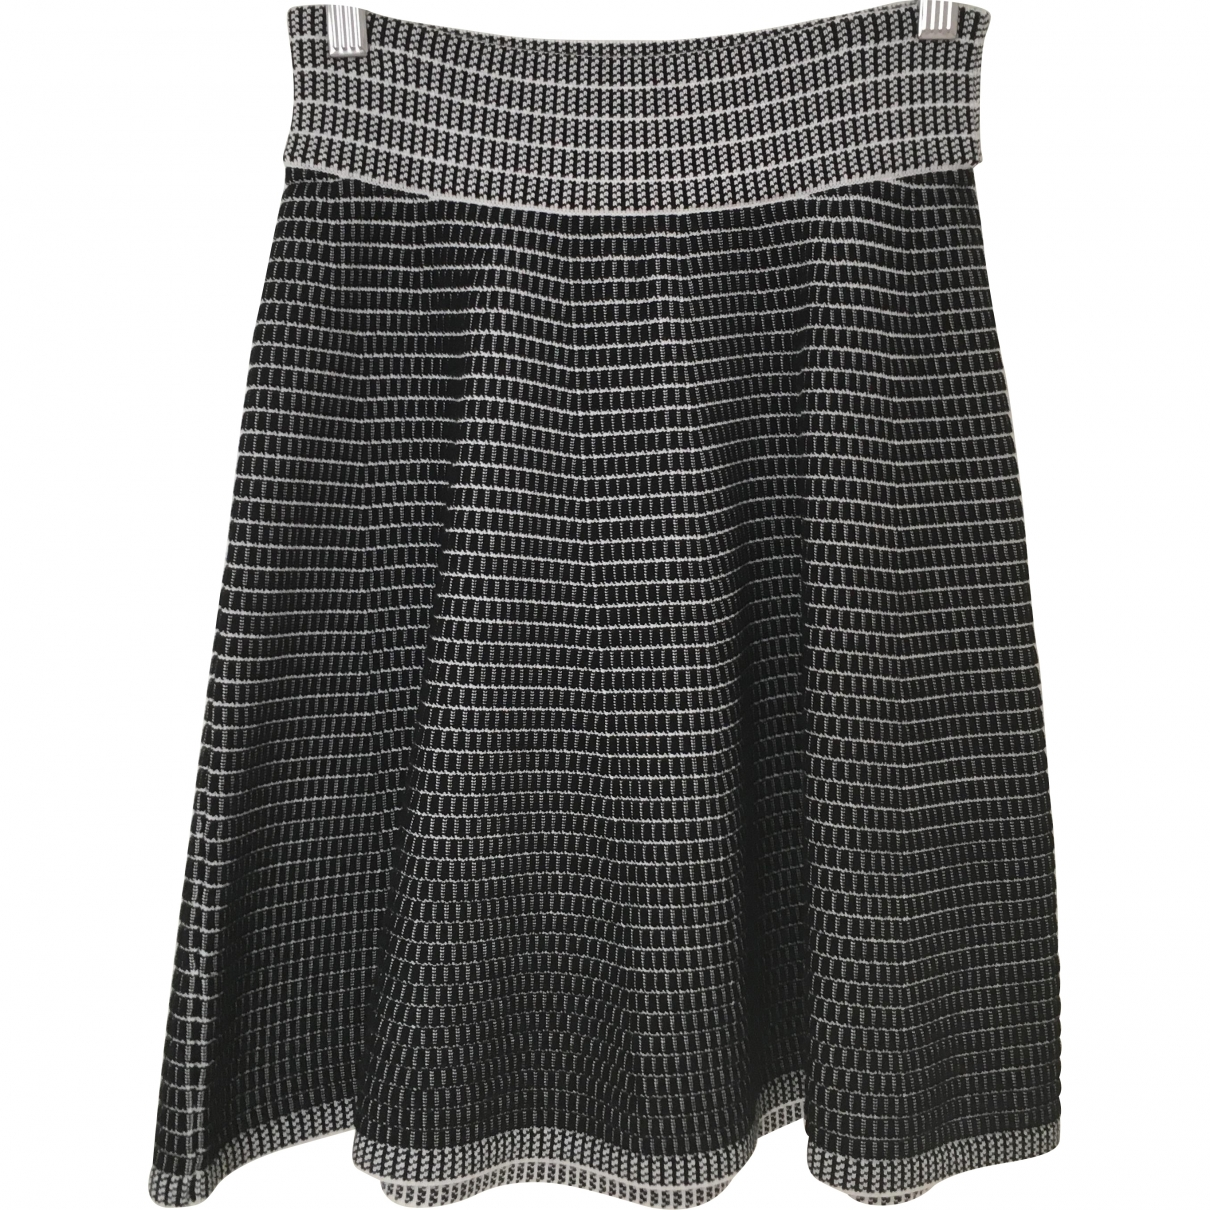 Hugo Boss \N skirt for Women S International